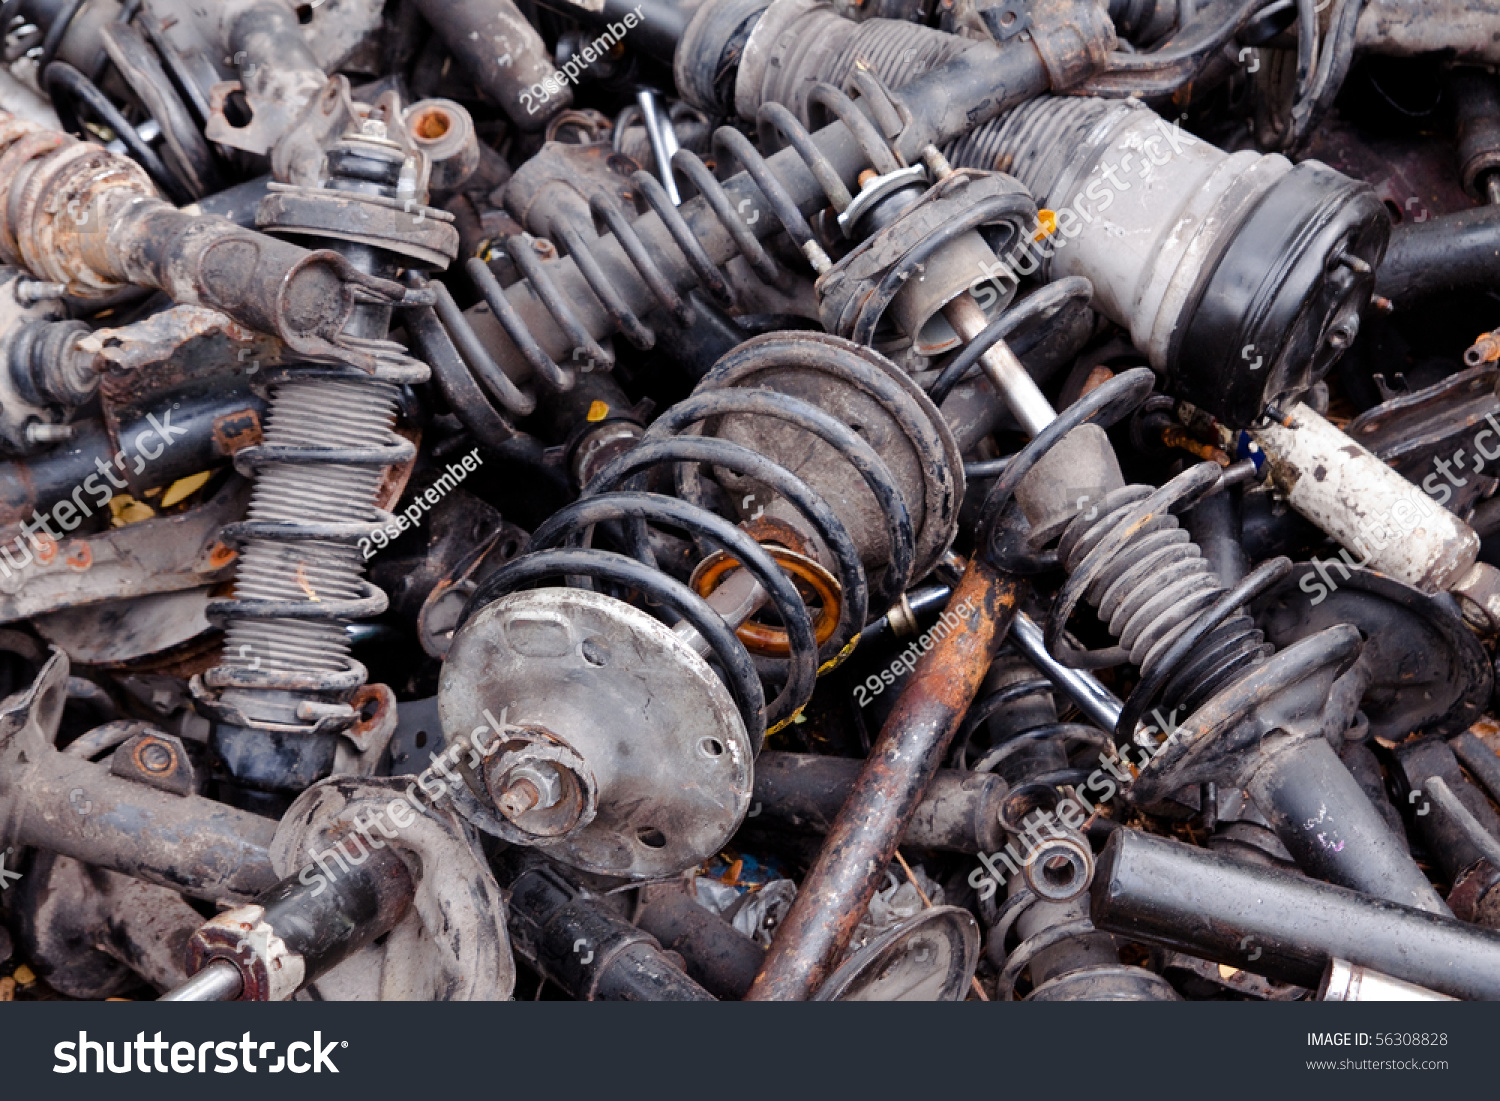 Metal Waste Scrap Old Car Parts Stock Photo 56308828 - Shutterstock